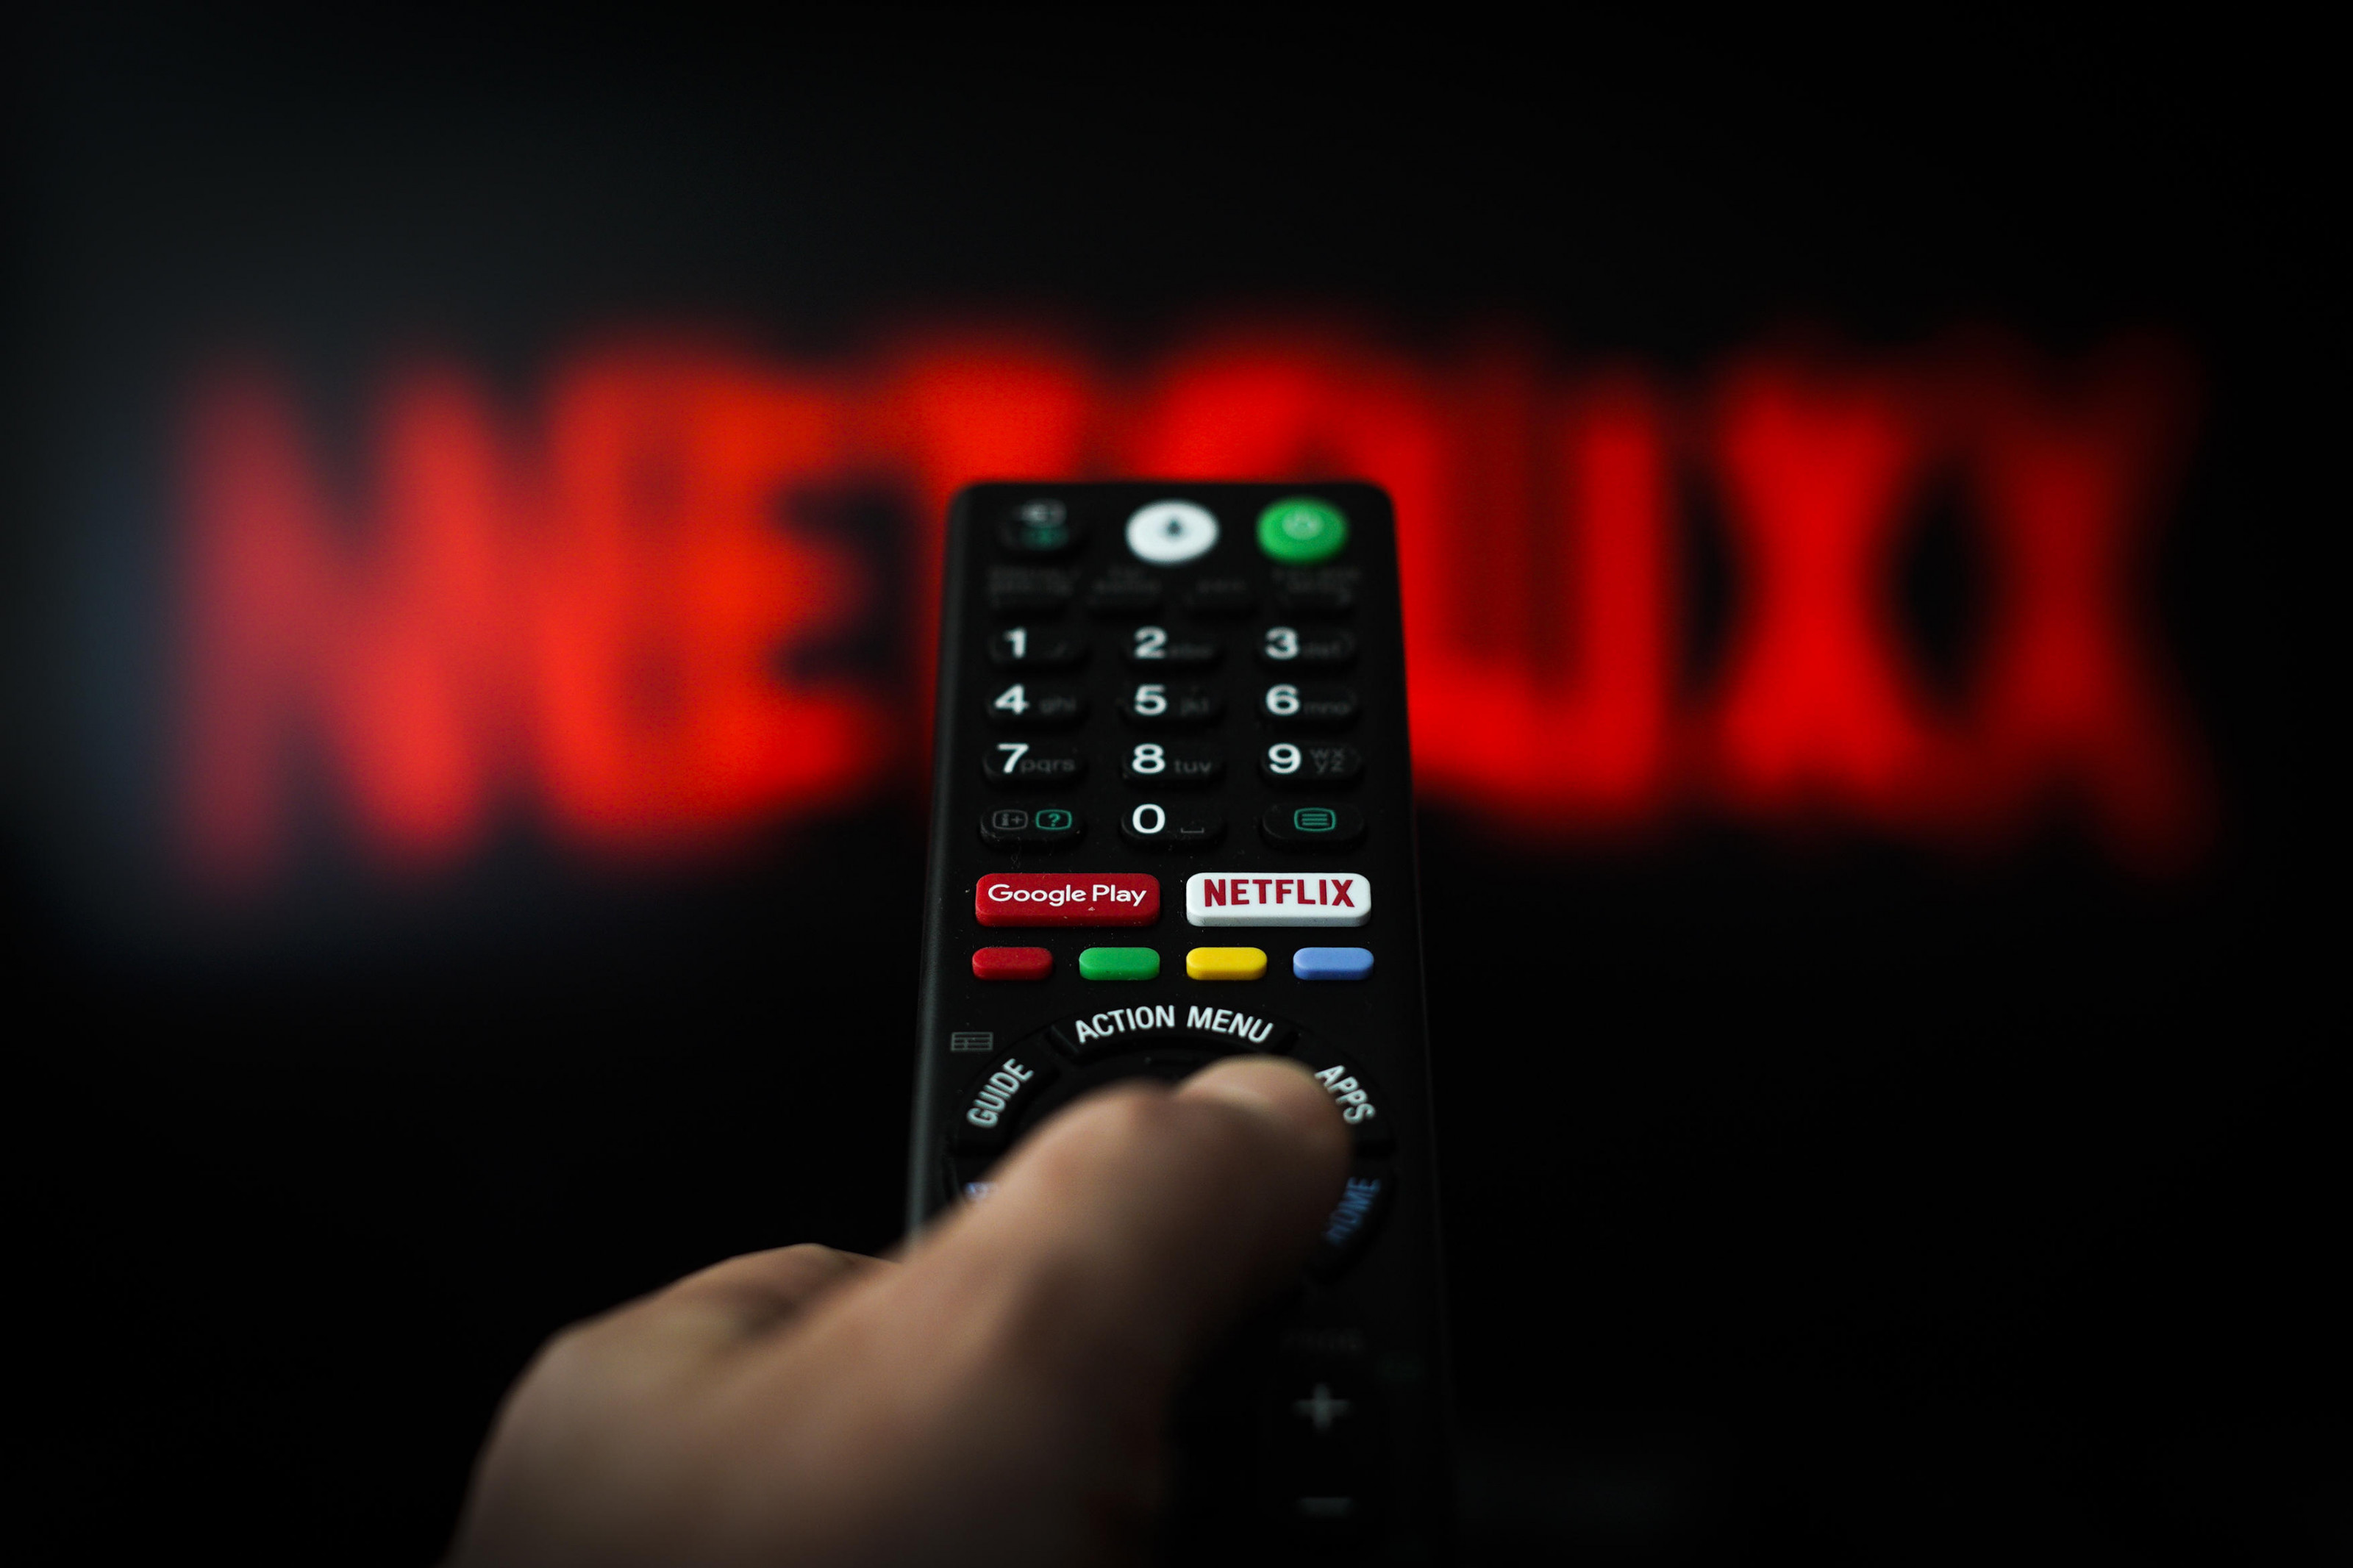 How Netflix is adjusting network operations during the COVID-19 outbreak